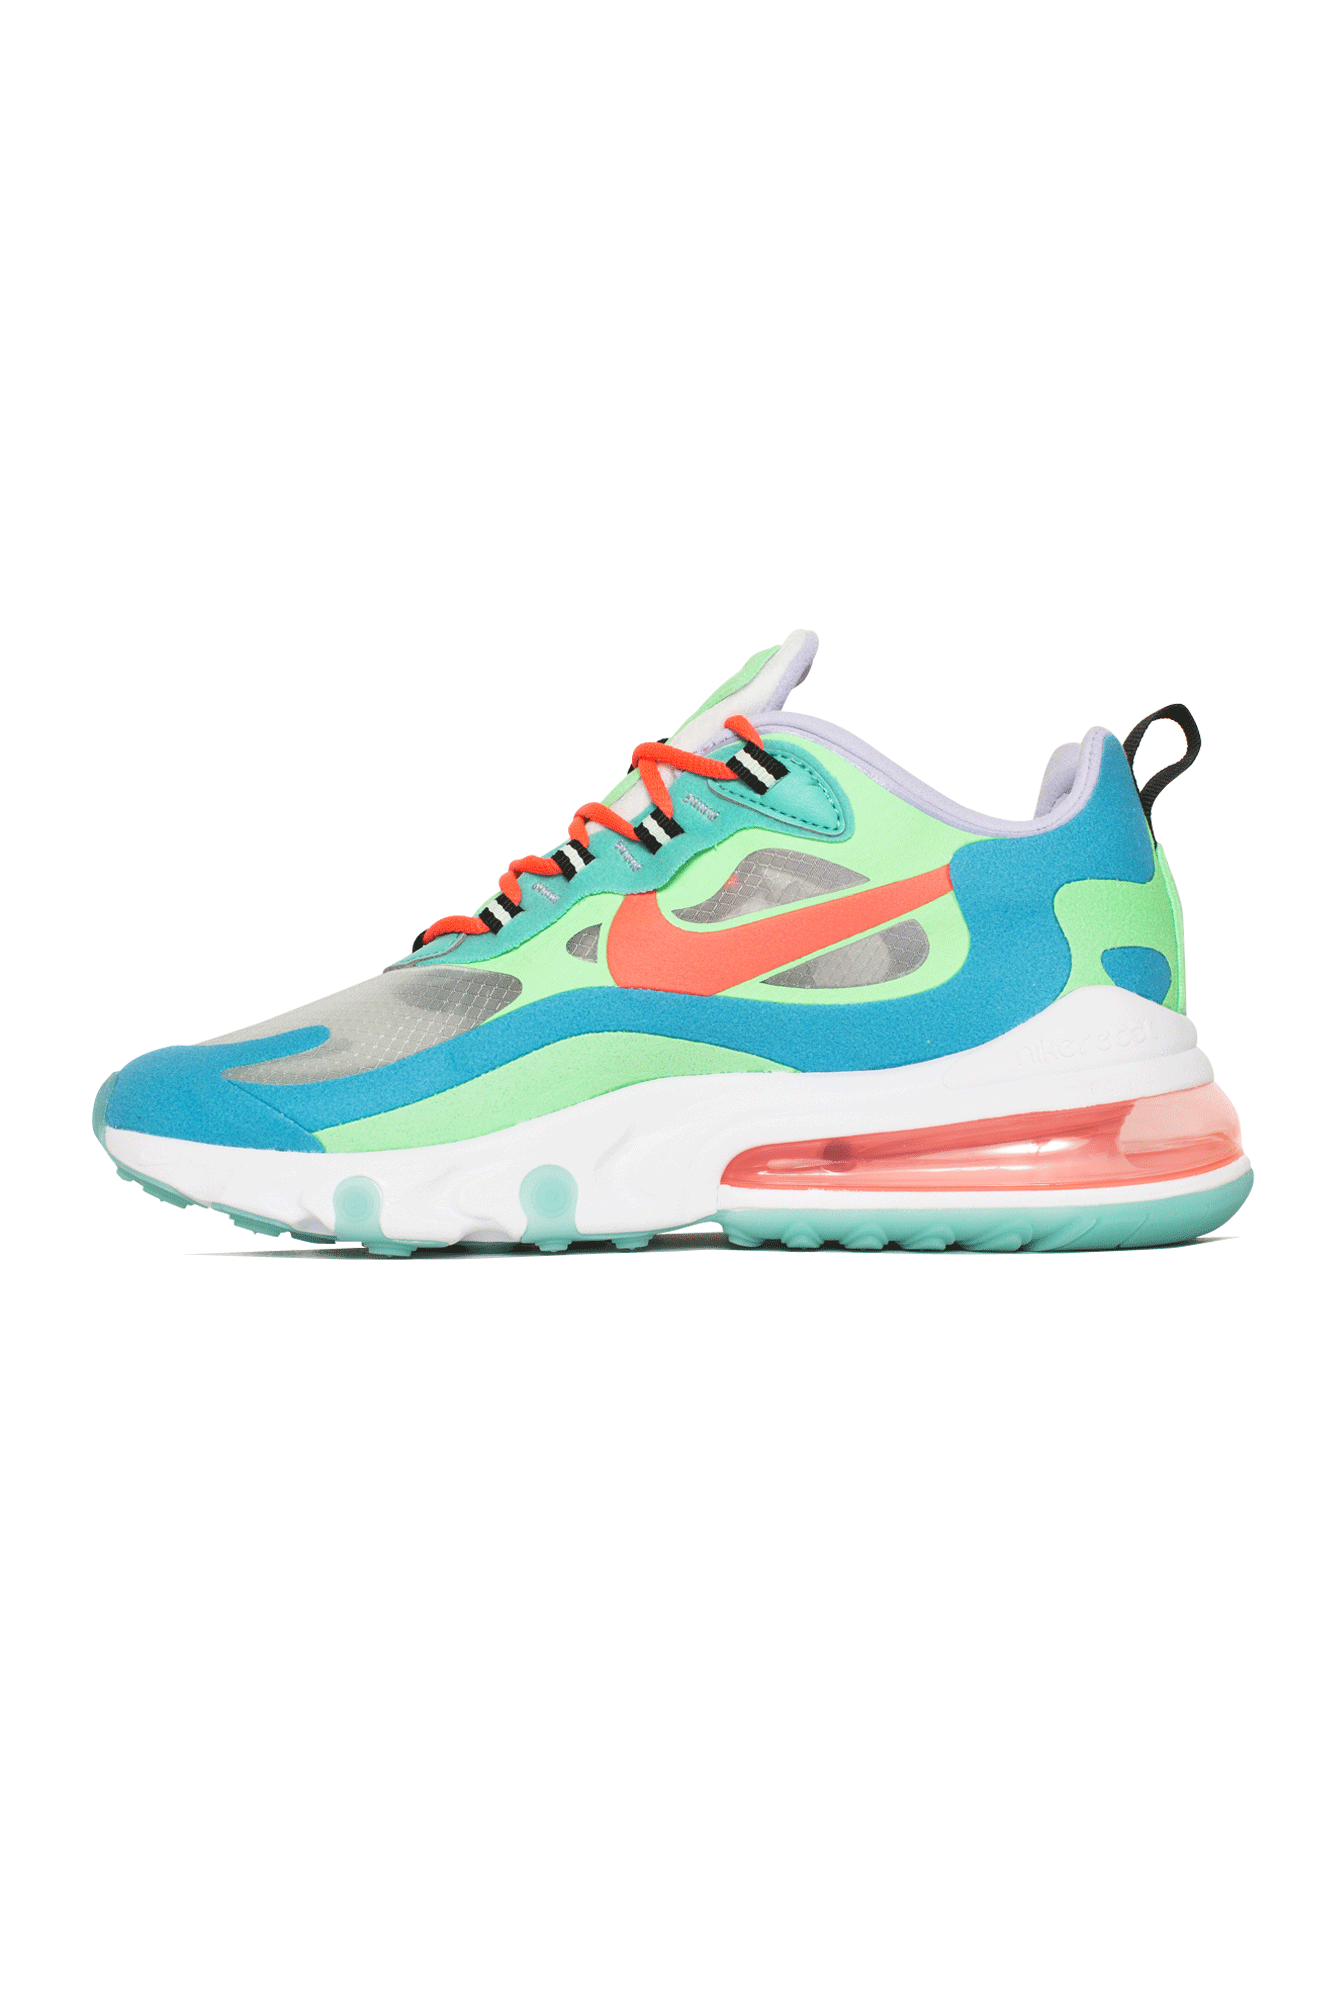 heiß Nike Air Max 270 React Singapore Release Details: July